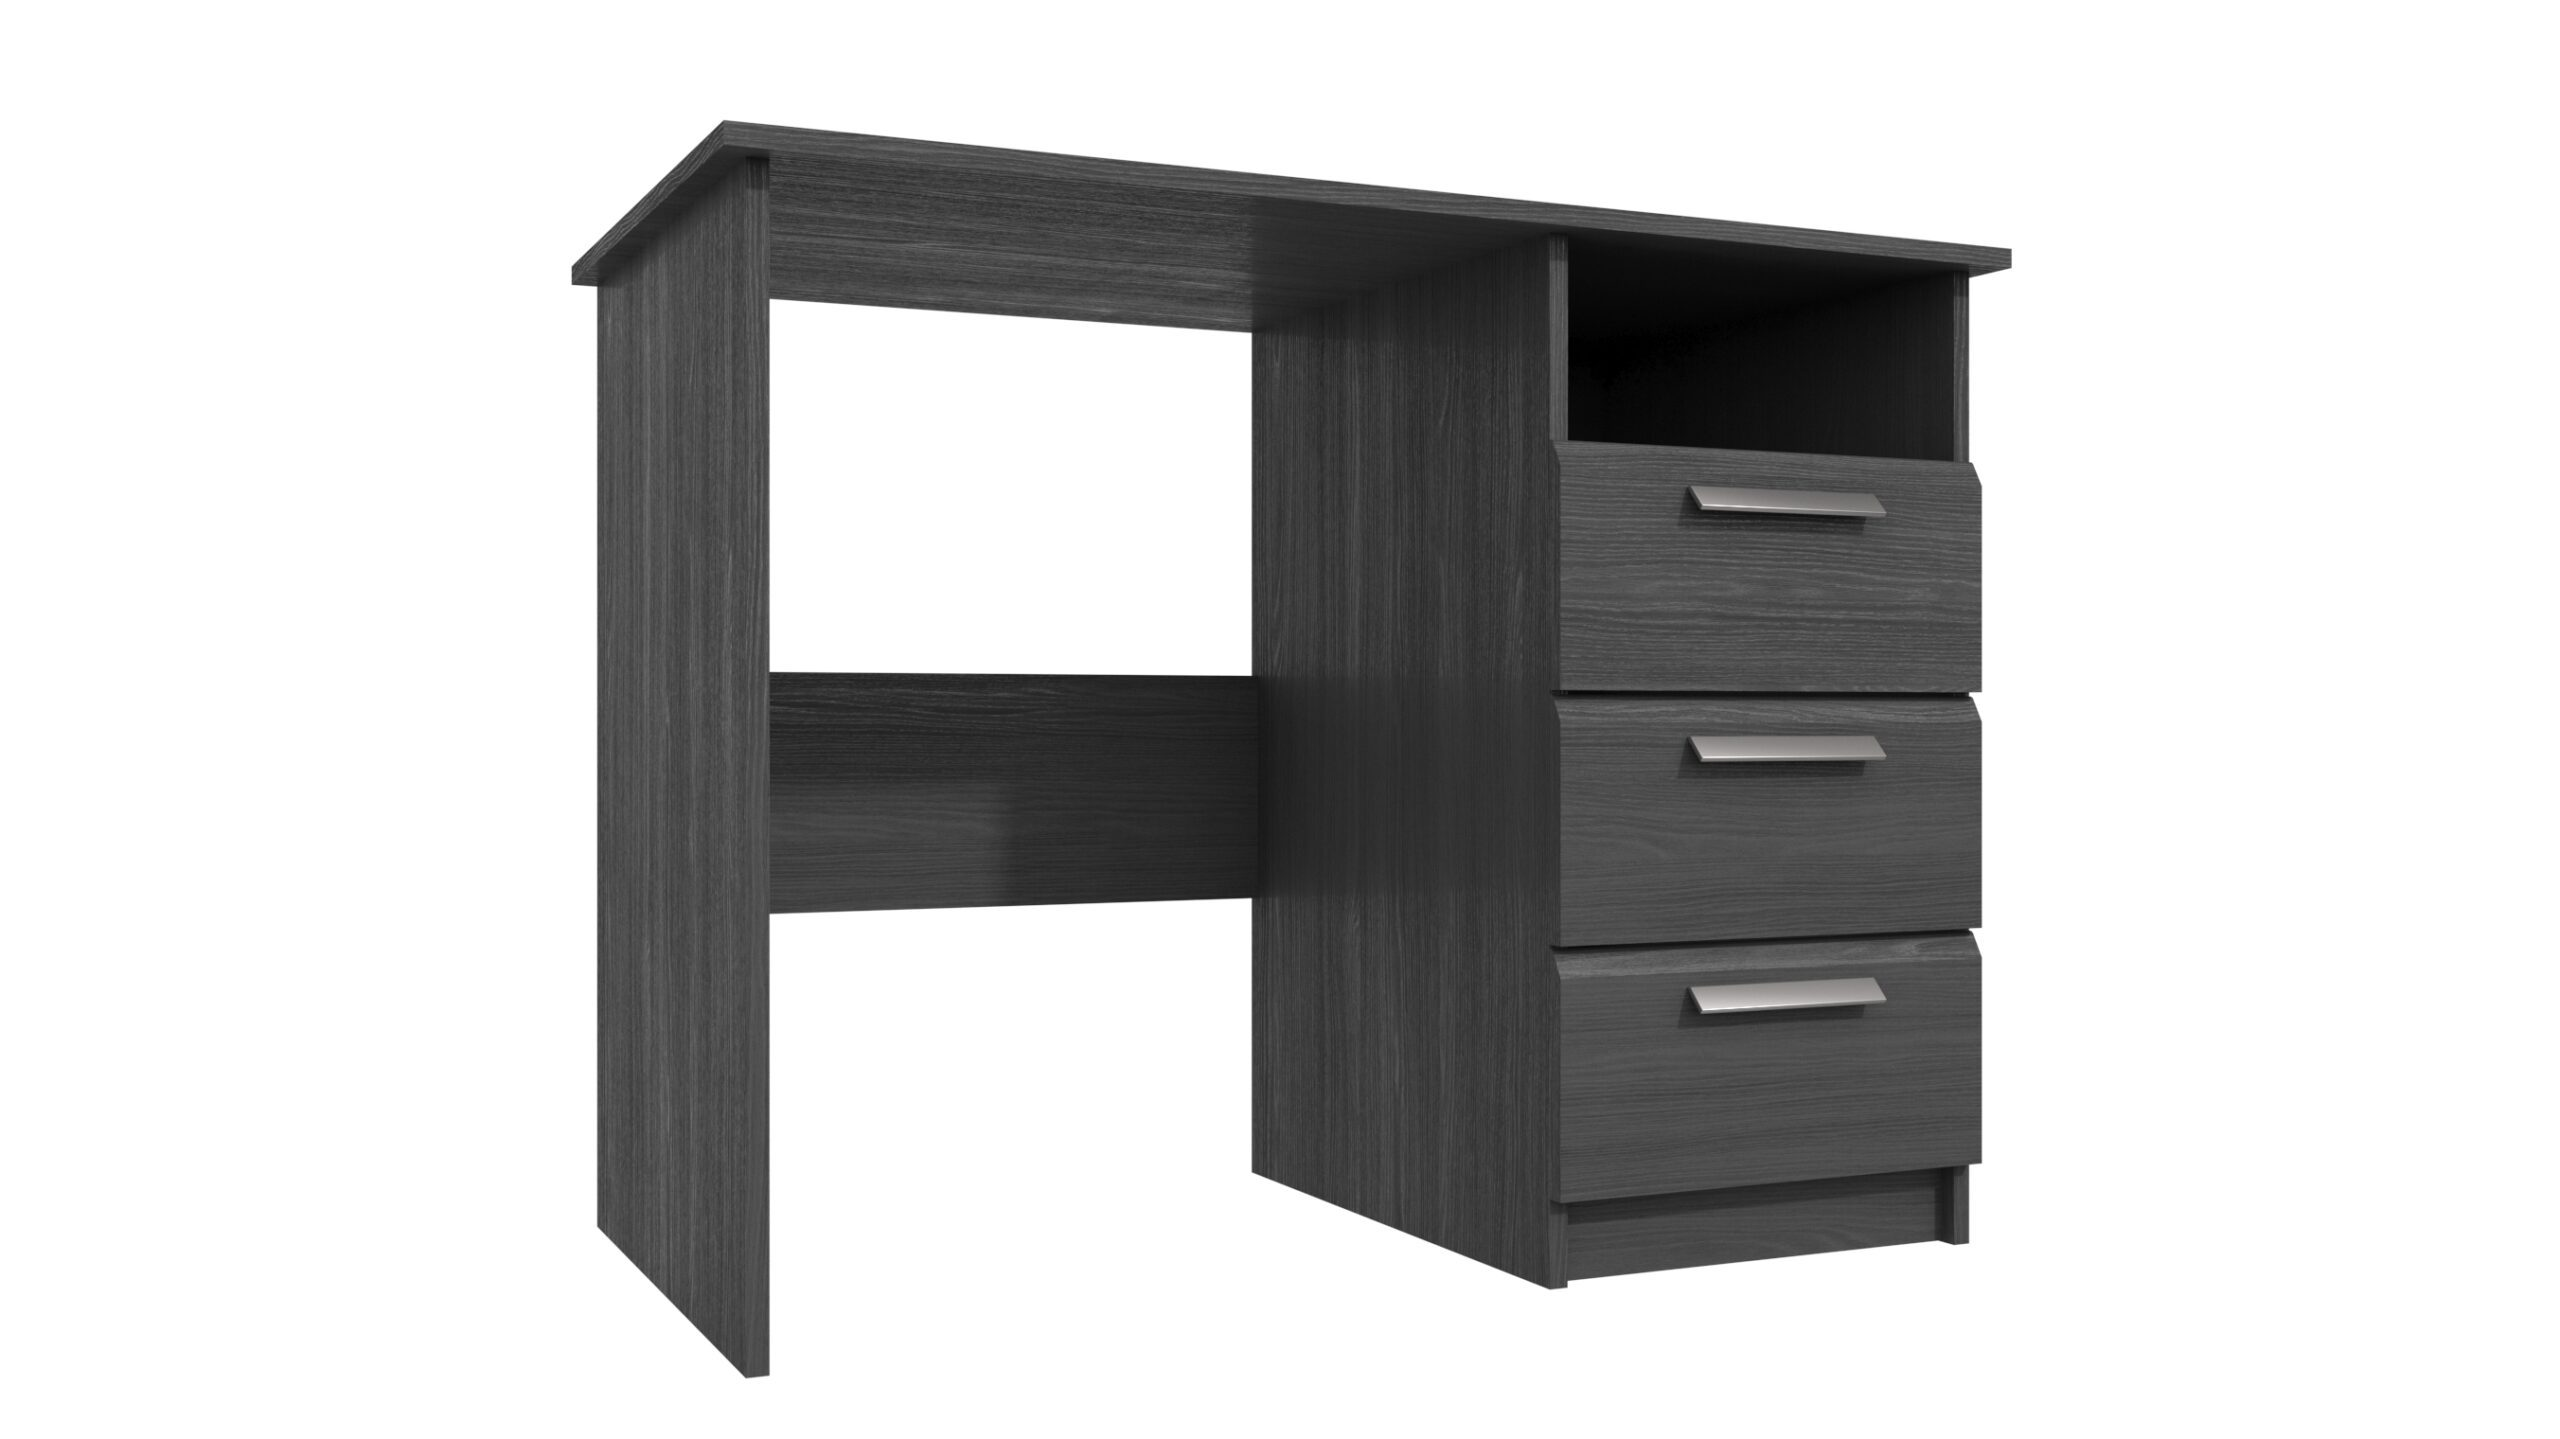 Wister Three Draw Dressing Table - Graphite